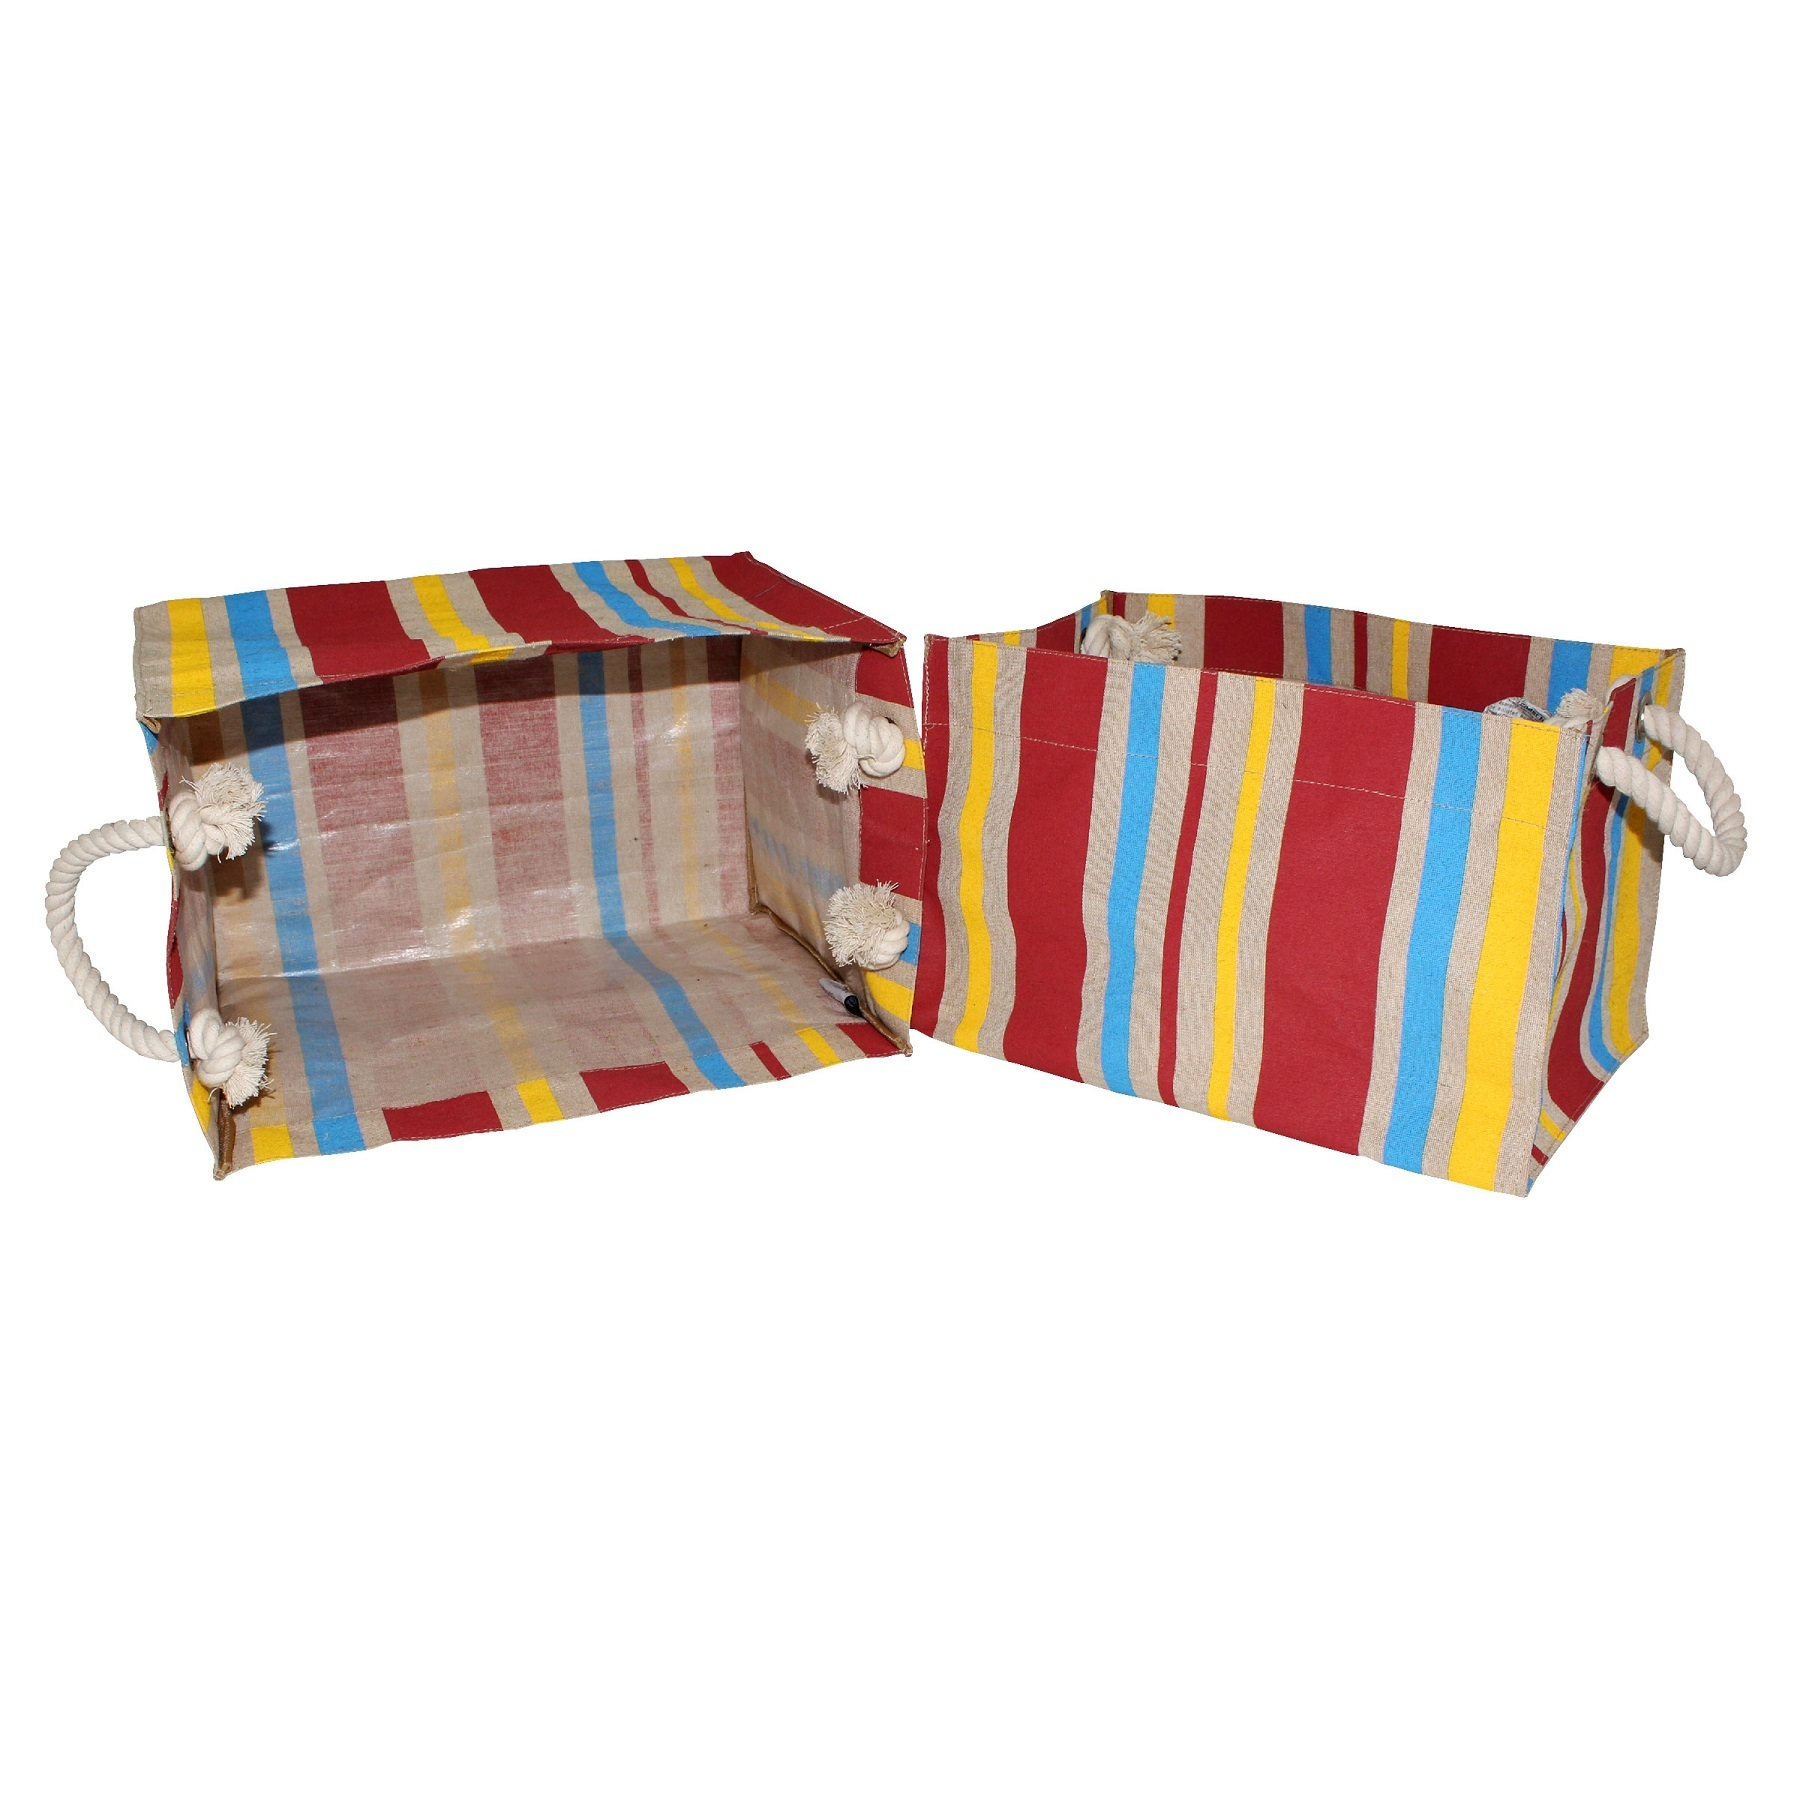 PP Laminated Juco Fabric Box Type Bag With Allover Striped PrintPp Laminated Juco Fabric Box Type Bag With Allover Striped Print